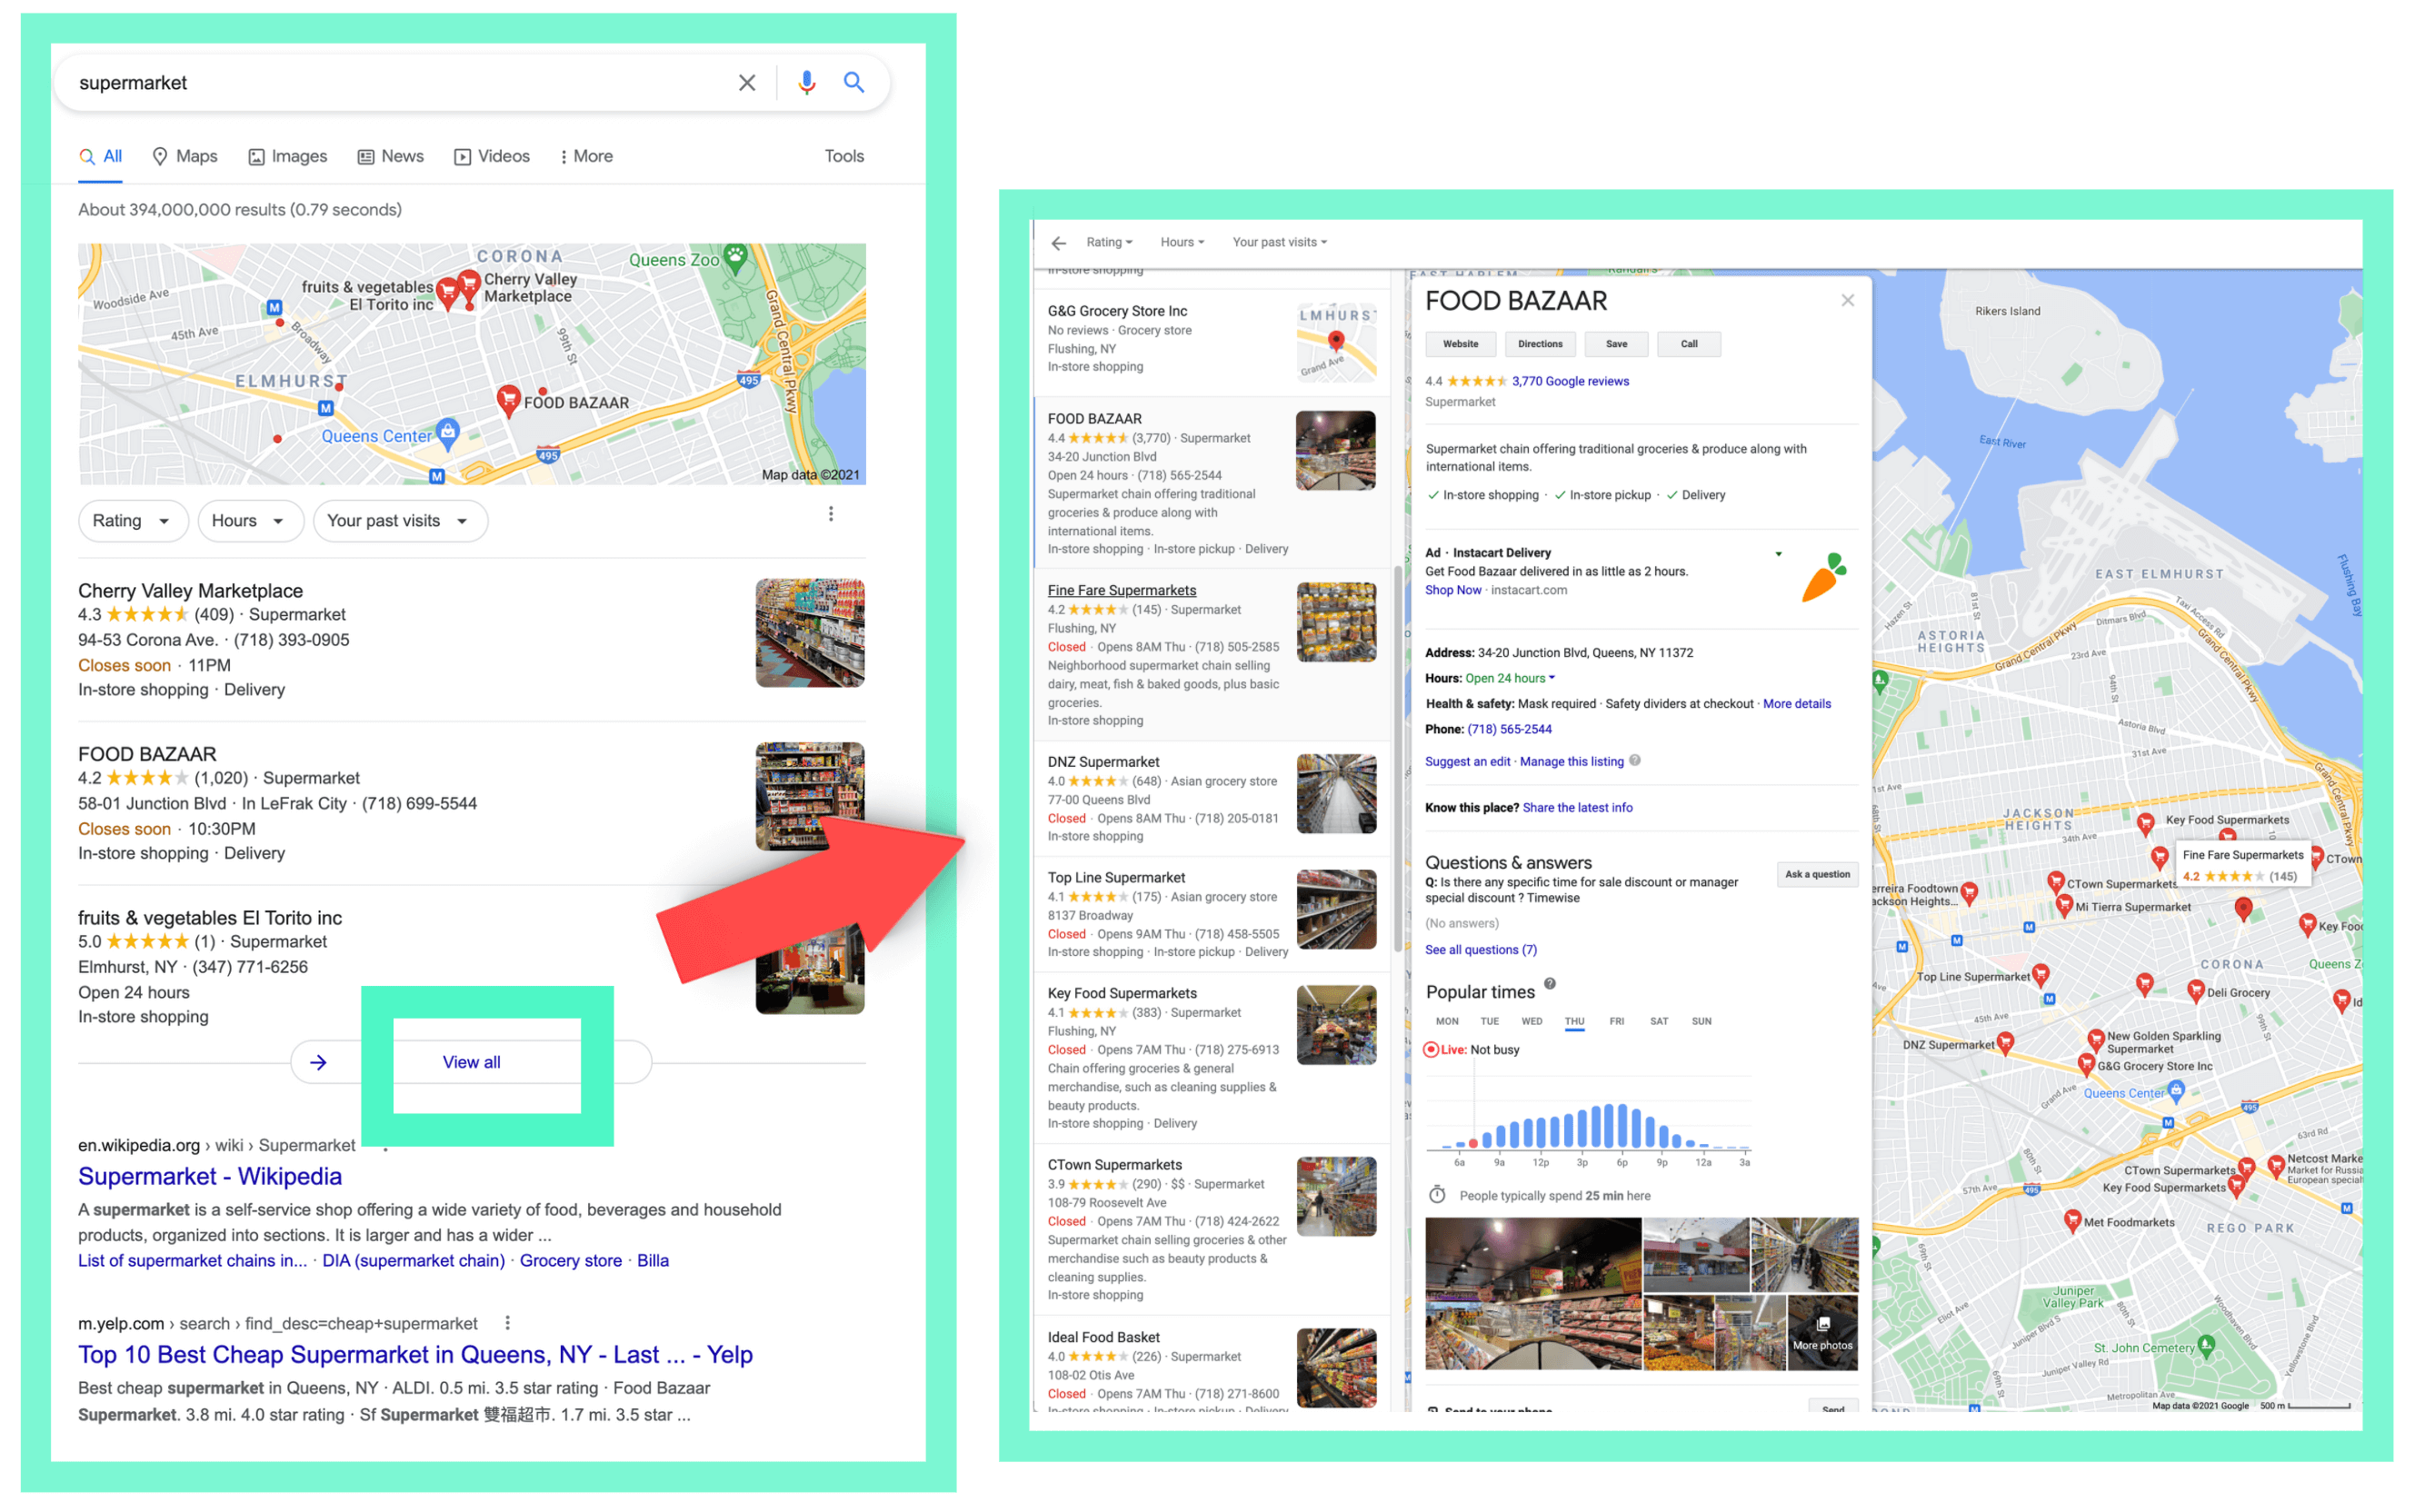 Google search result and maps